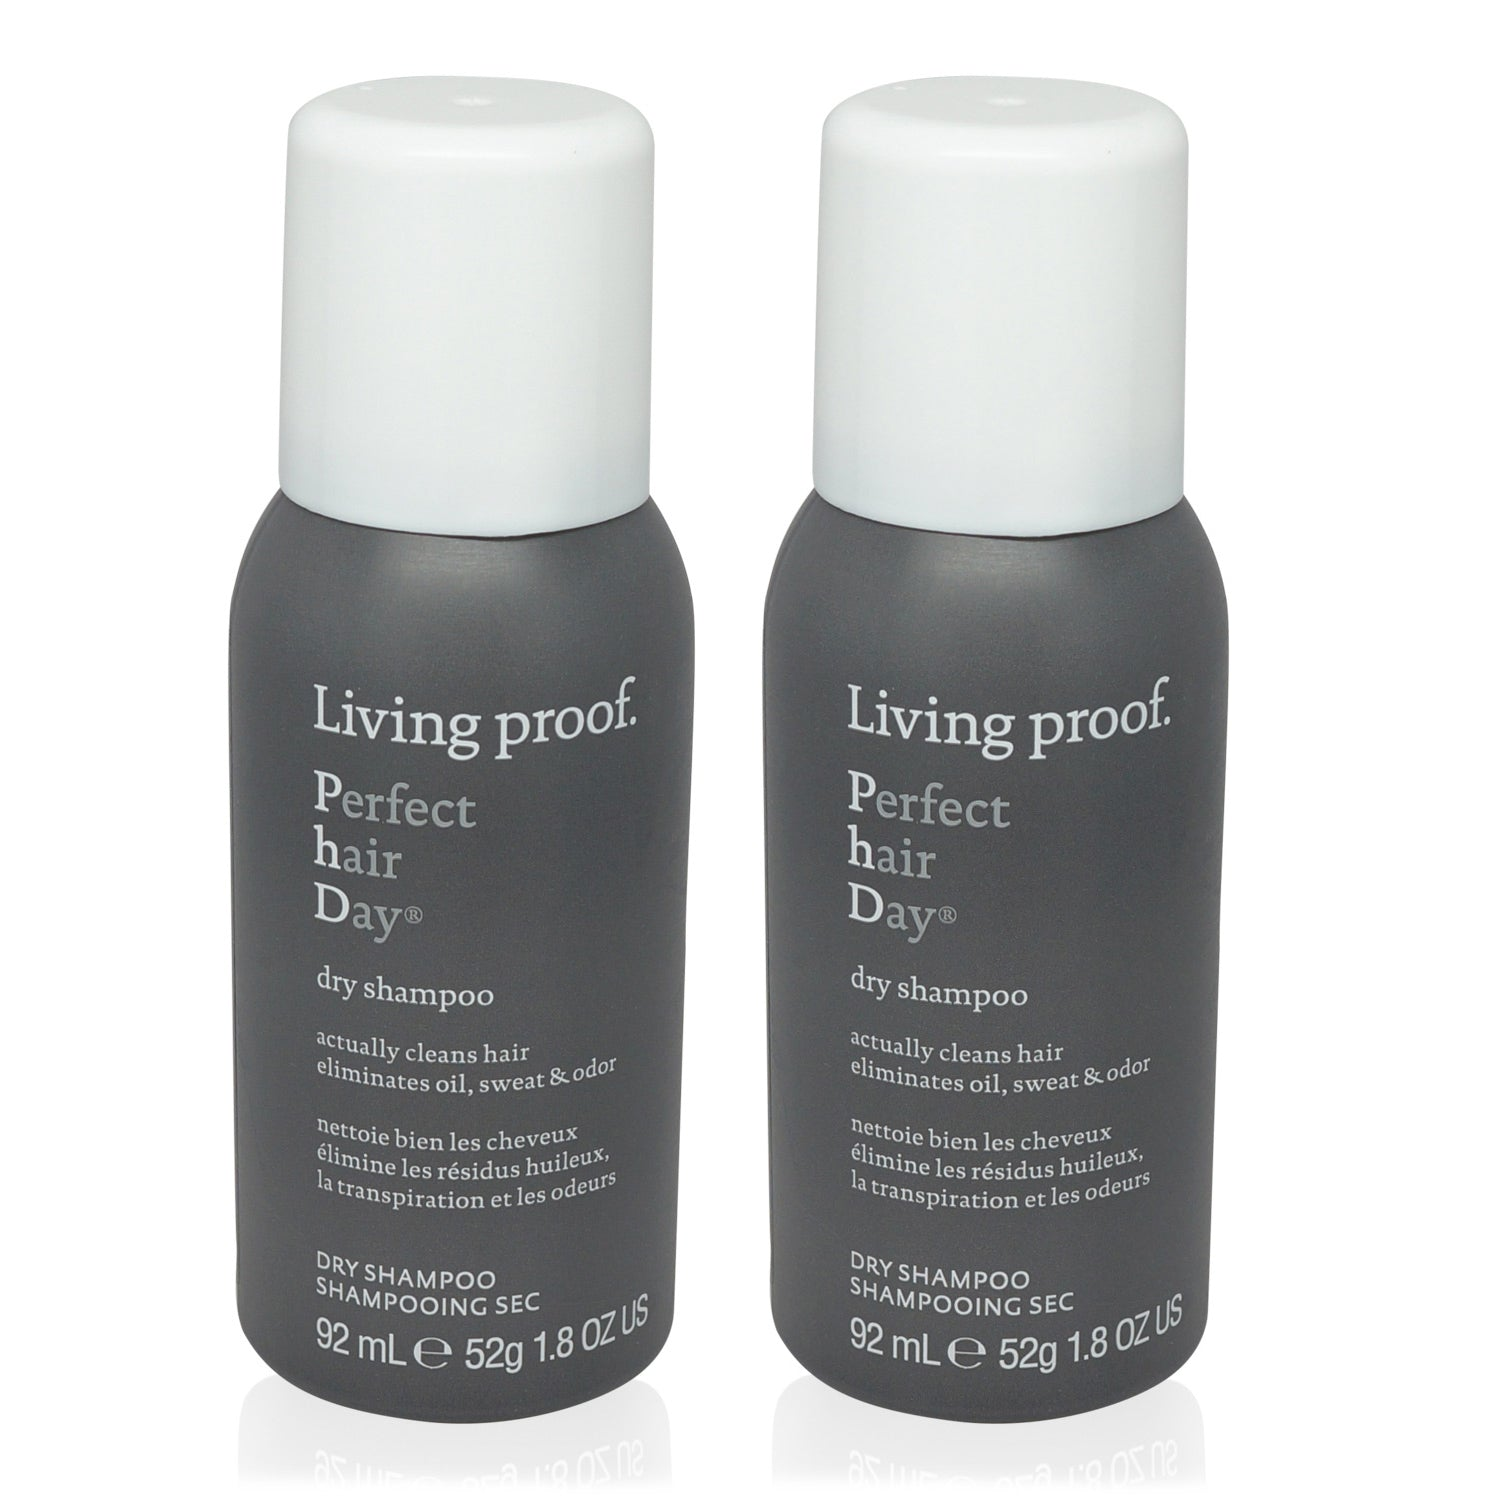 LIVING PROOF ~ PHD DRY SHAMPOO- 1.8 oz - 2 PACK (ARESOL)